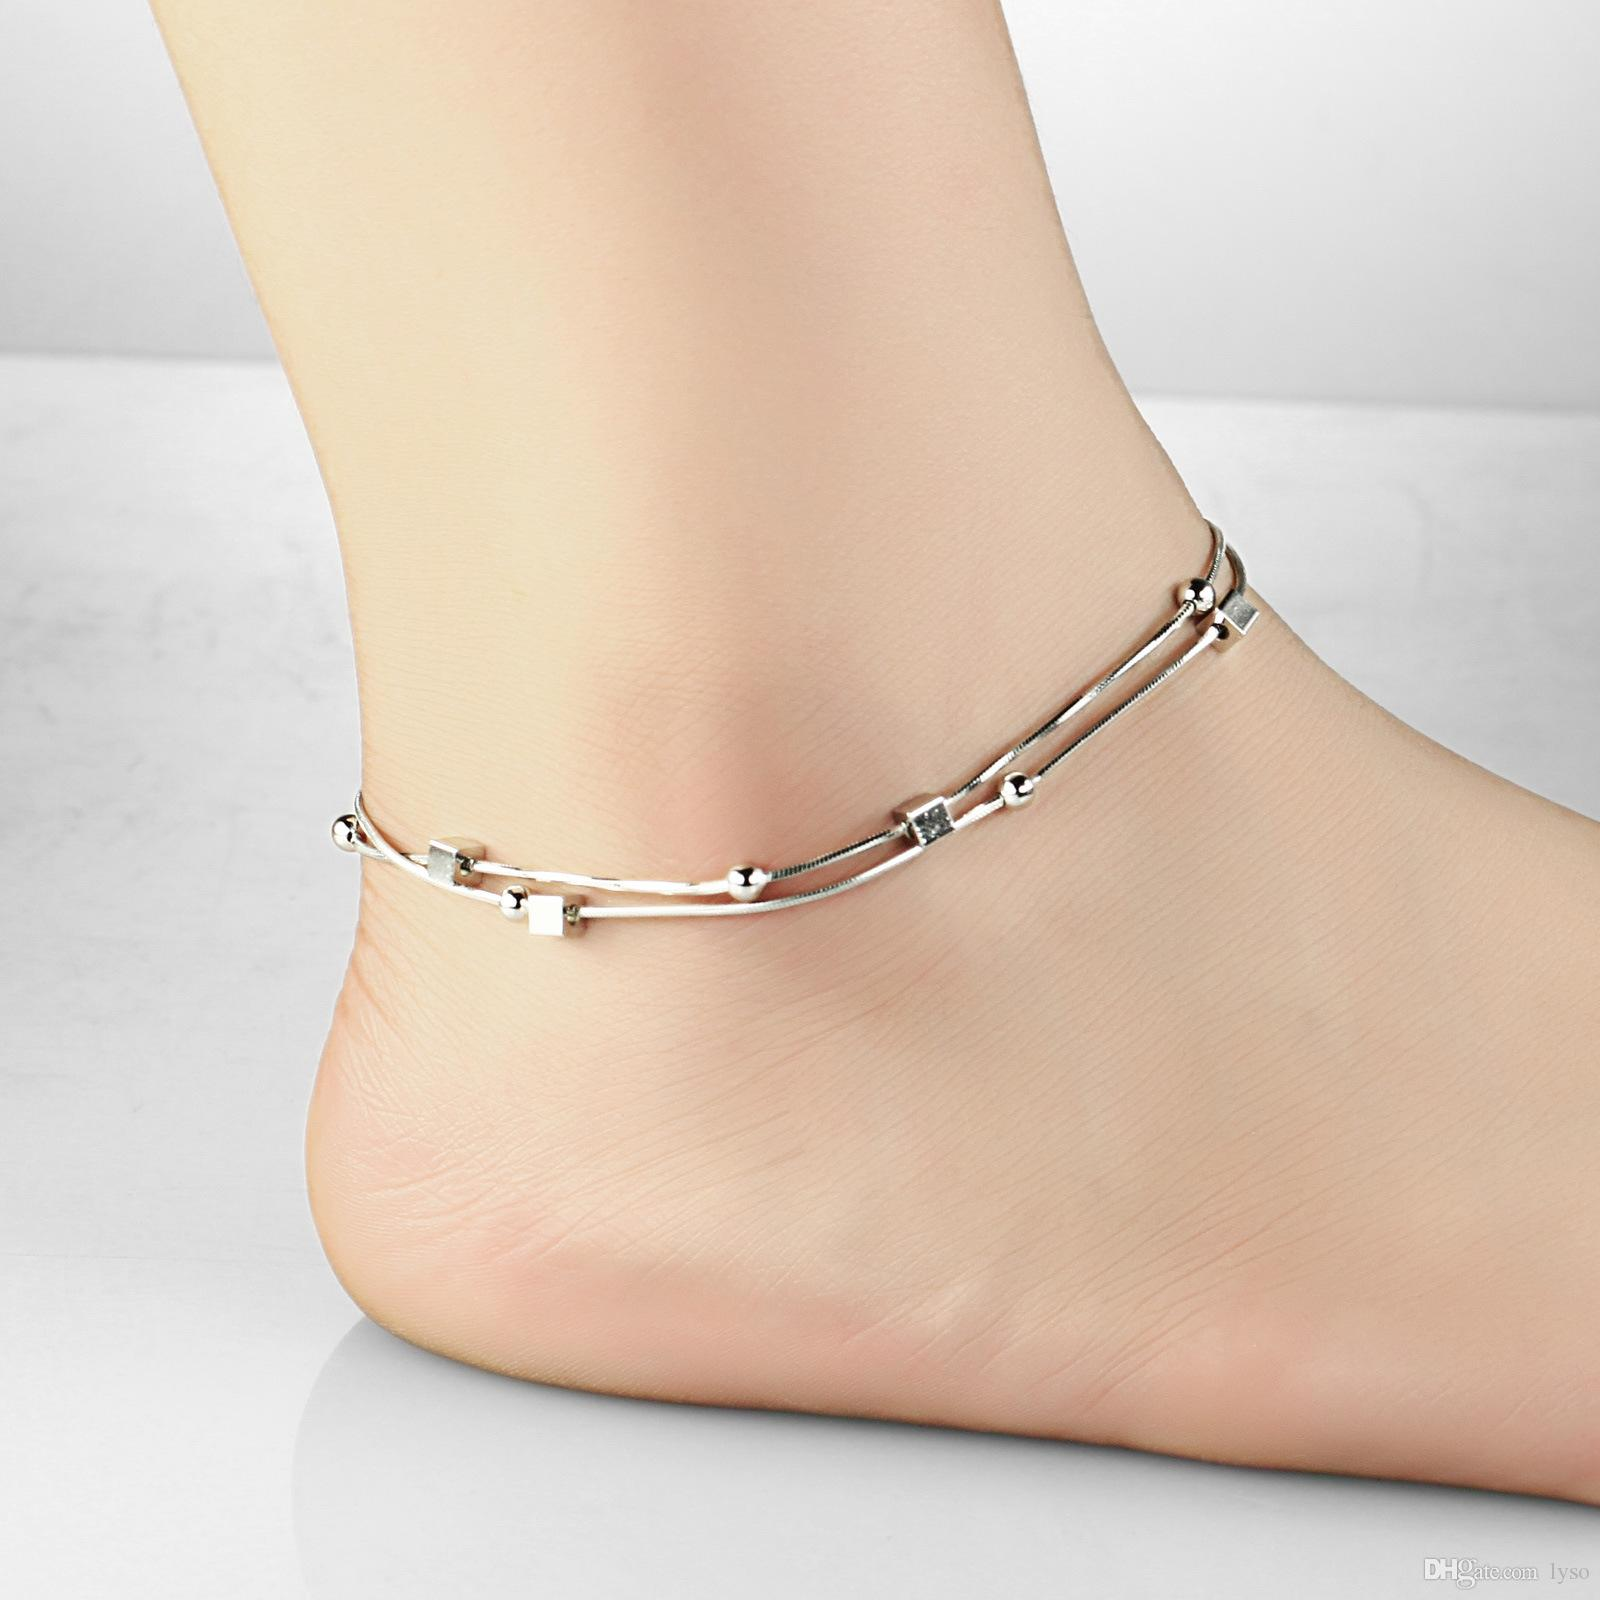 gift anklet shop s charm il baker for bakery cupcake fzsc listing mother day sweet mom fullxfull lover cake